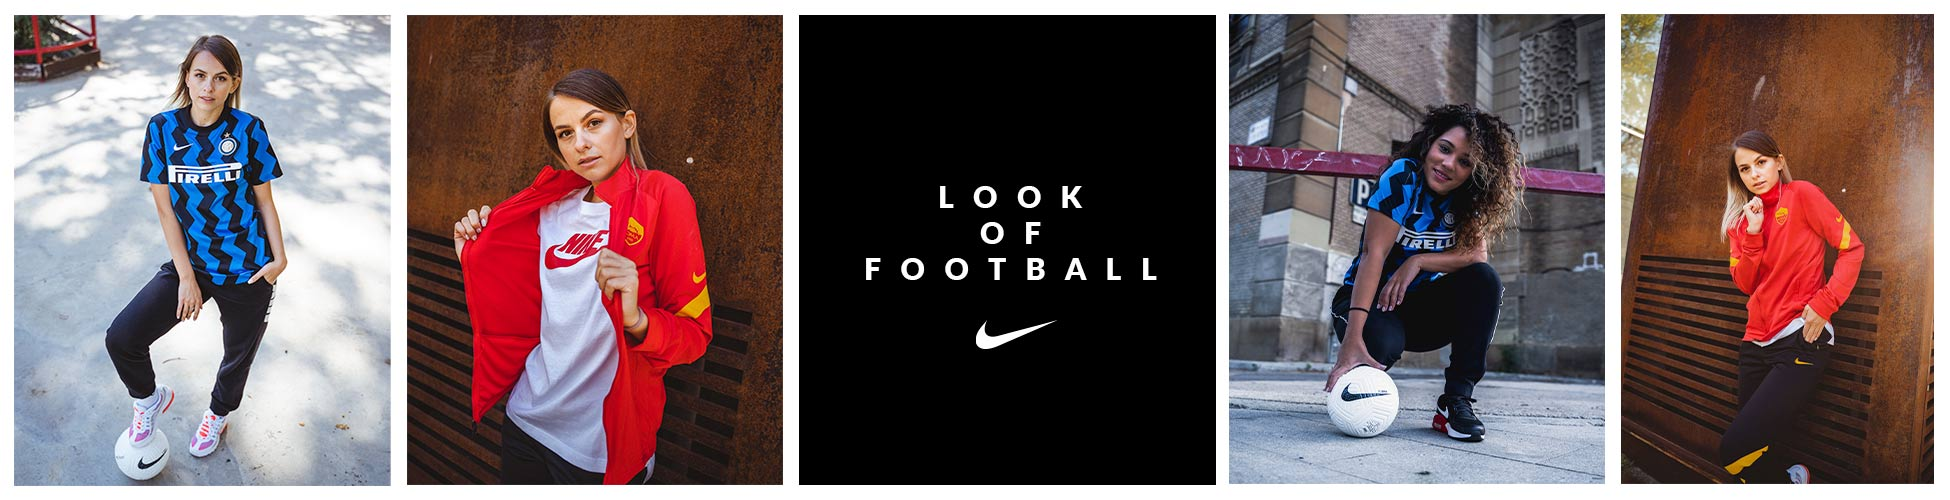 NIKE LOOK OF FOOTBAL NOVIEMBRE 2020 IT